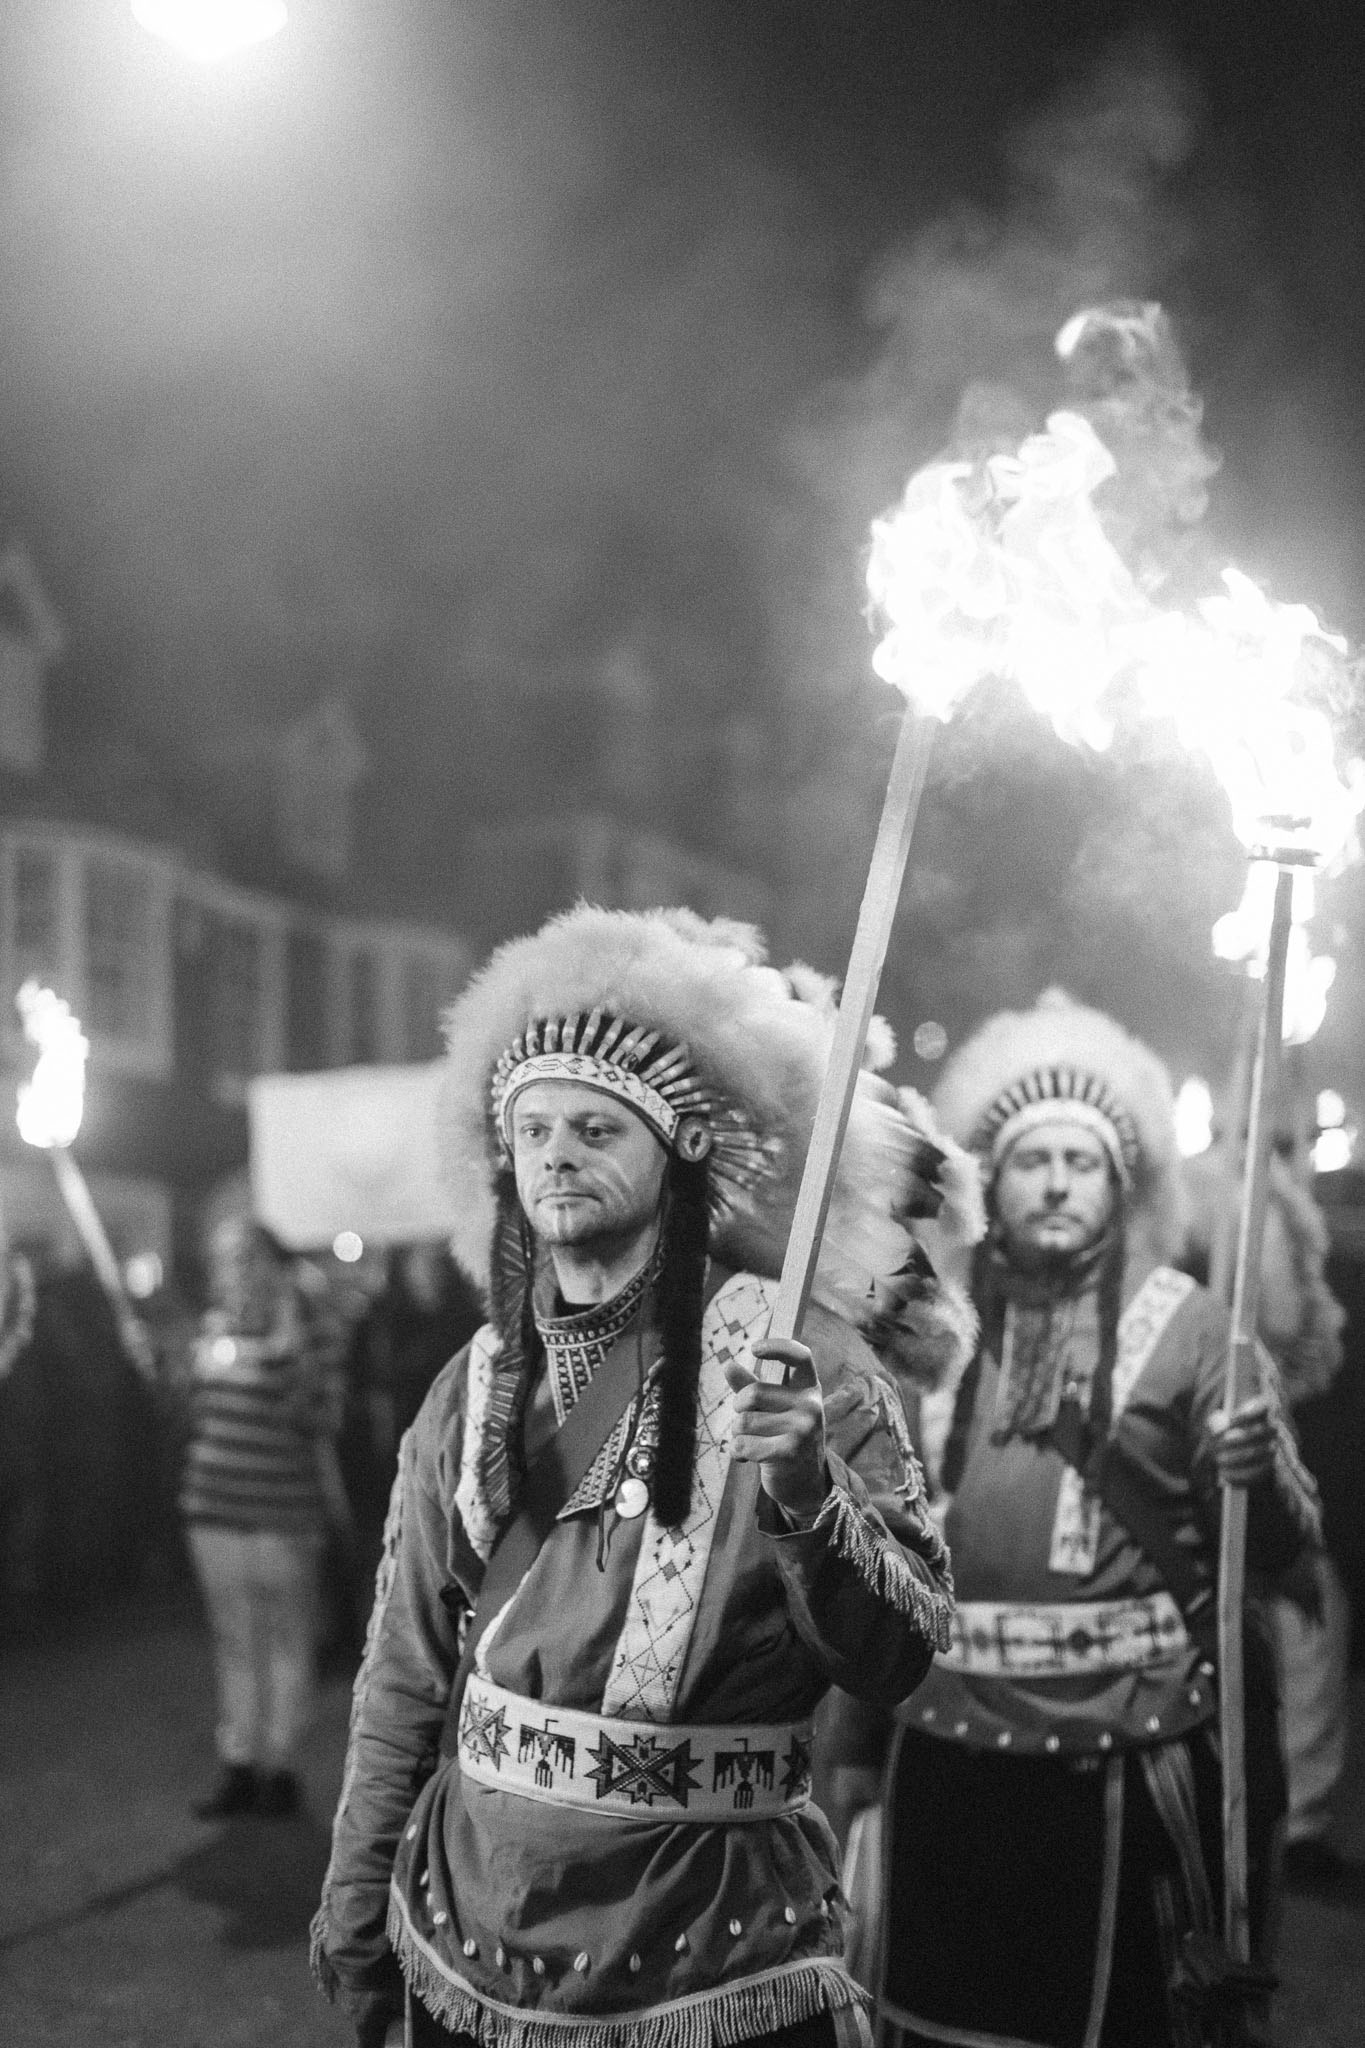 Lewes Bonfire 2017 - the biggest bonfire celebration in the world where the streets of this small town glow red from the fire while seven societies process through the streets. Photos by Lewes resident Emma Croman. Photos must not be used without formal permission.